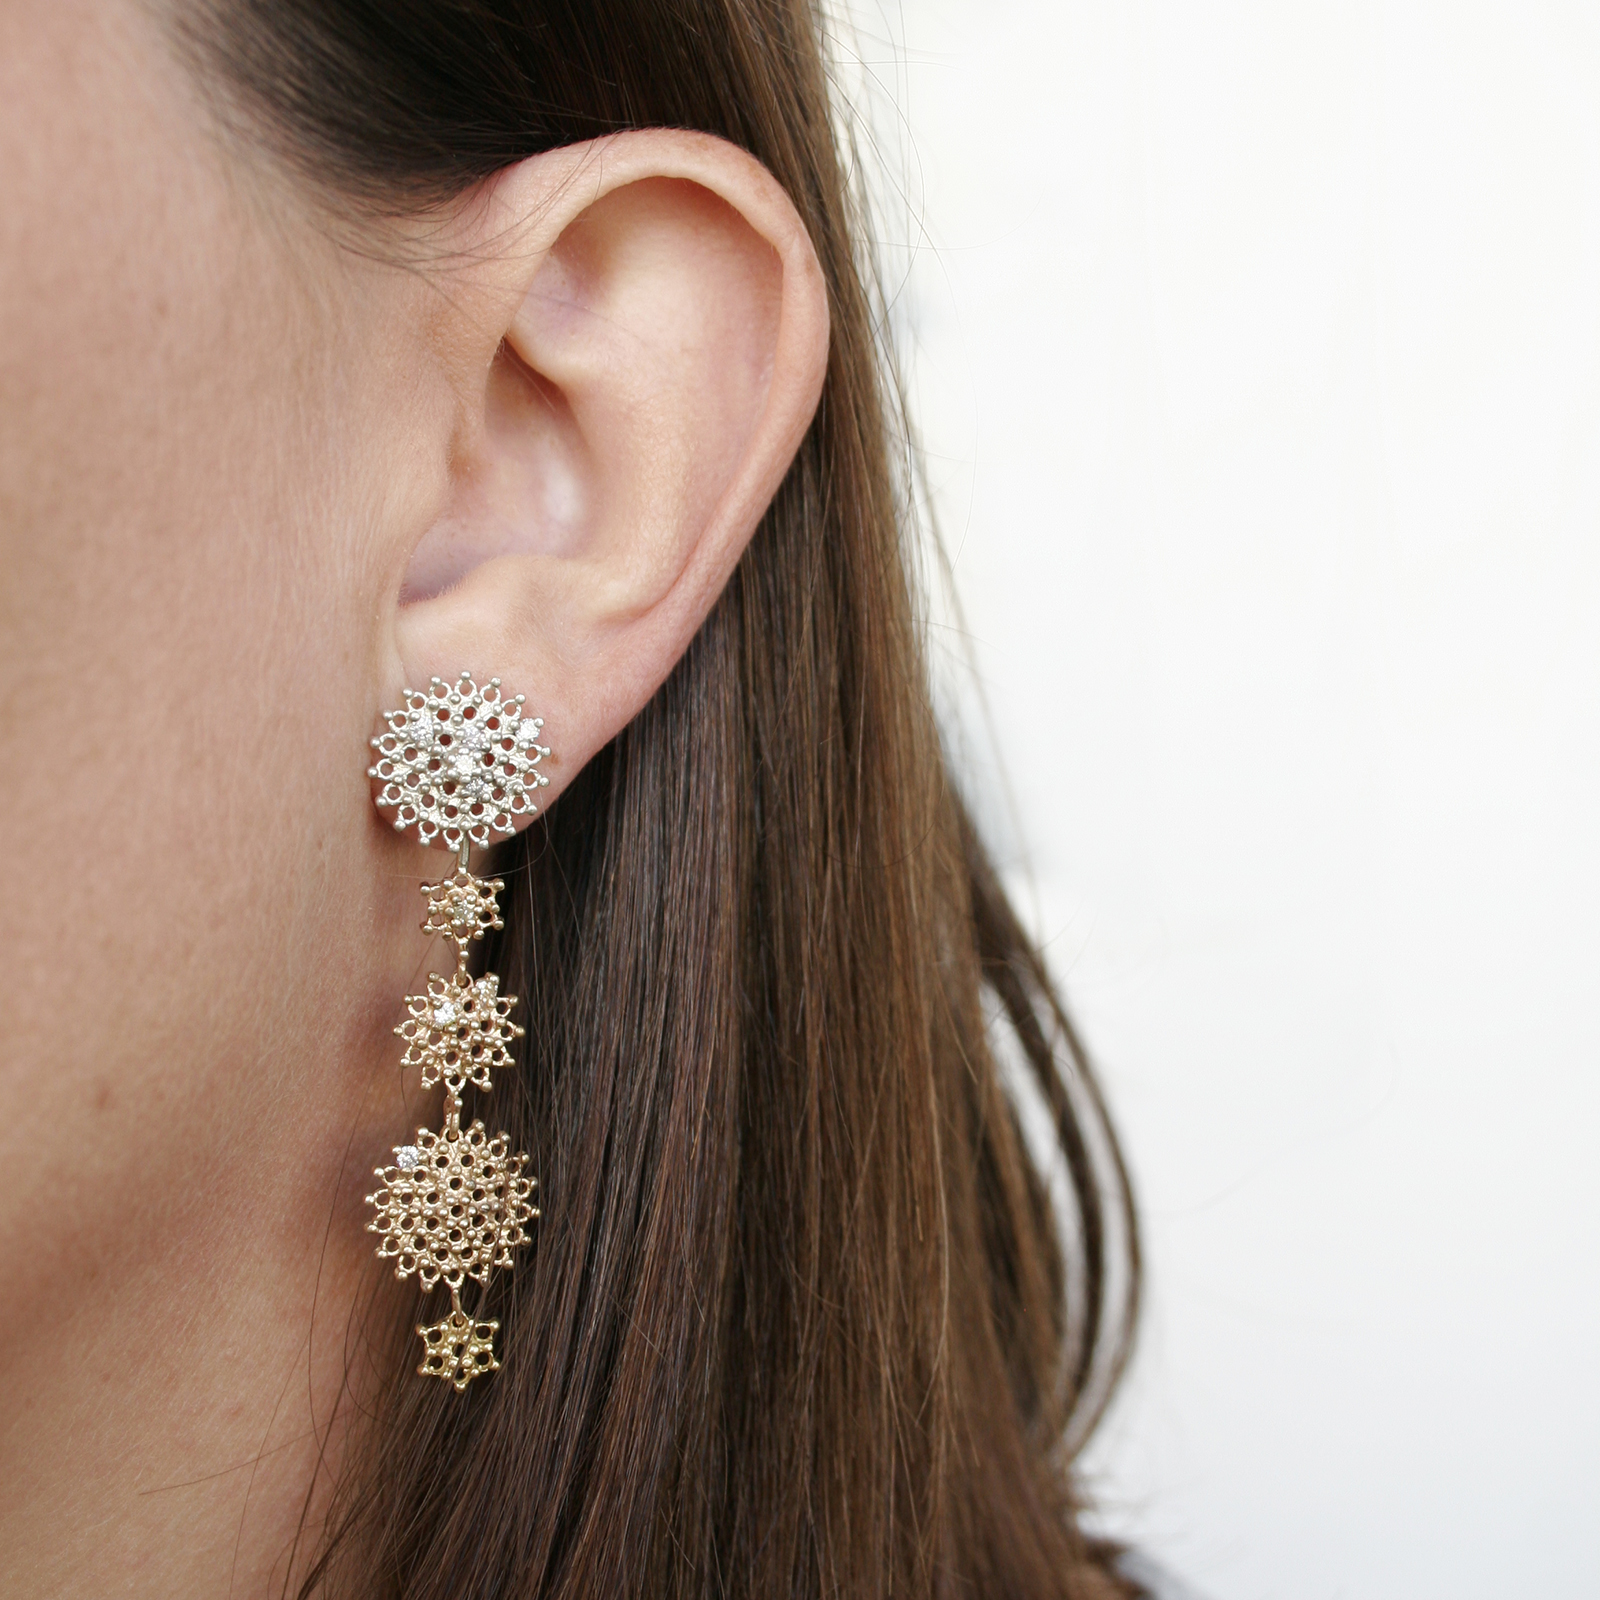 Graduated Day and Night Earring